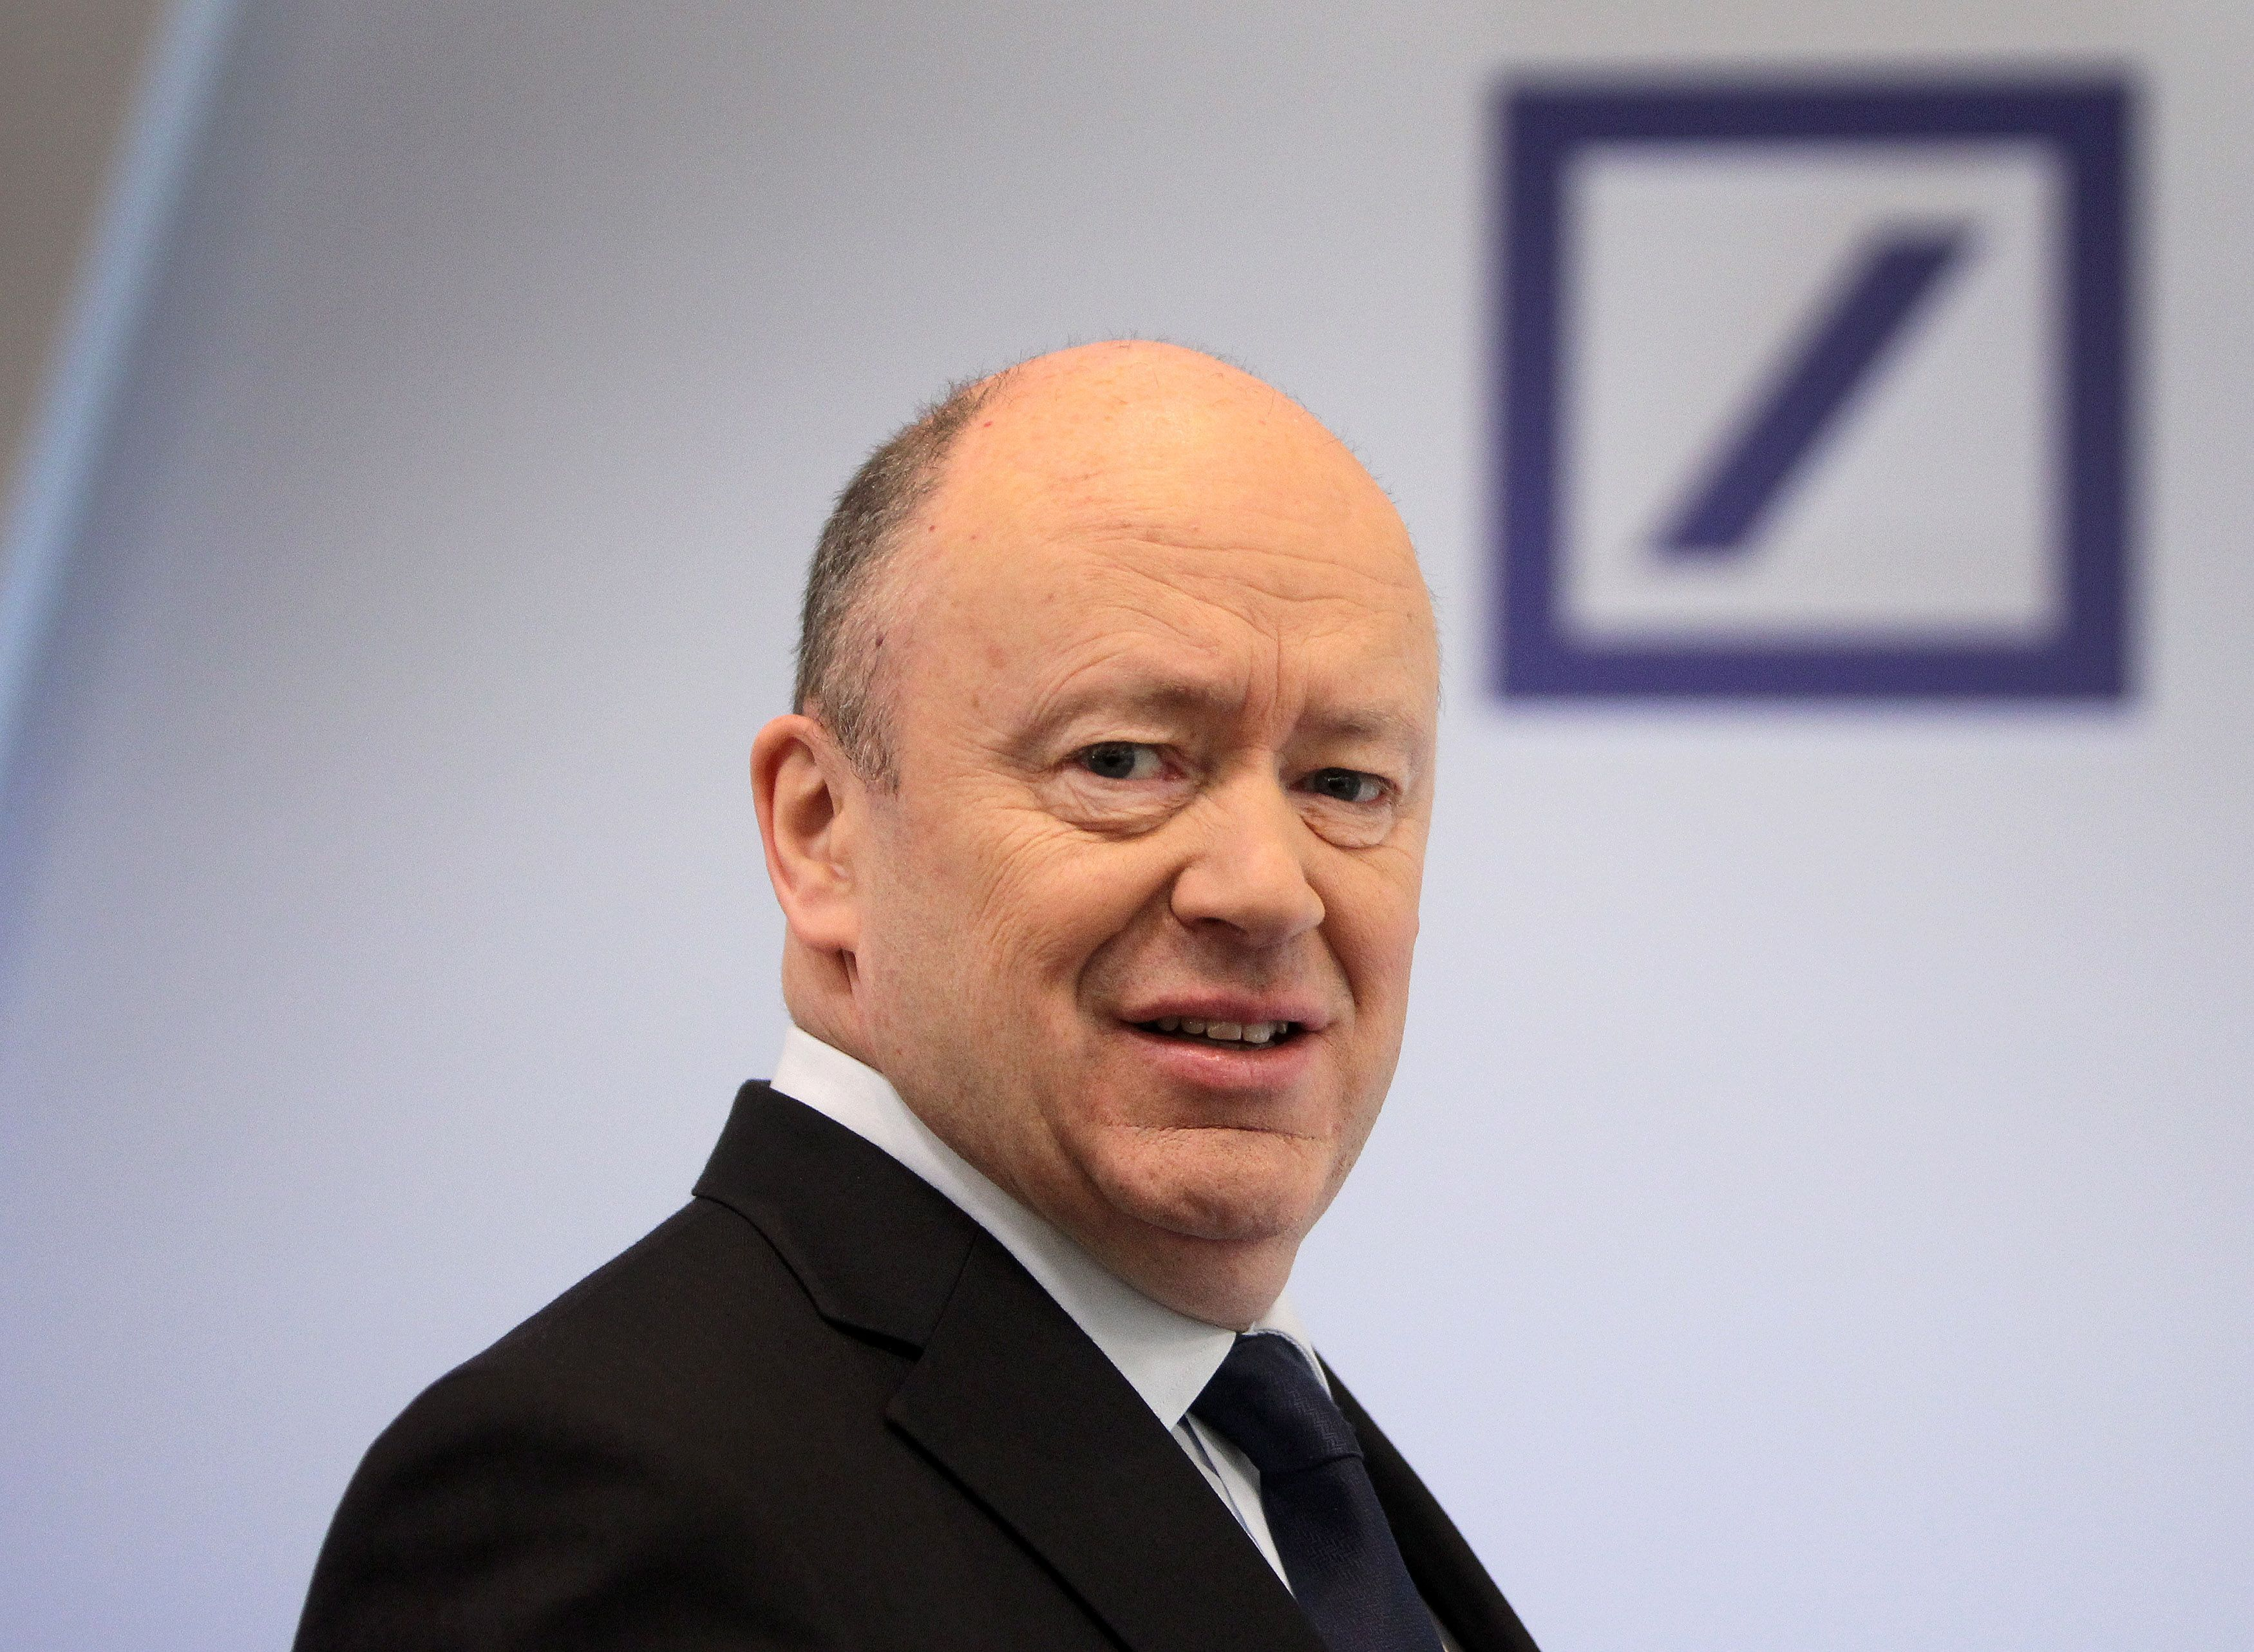 Deutsche Bank replaces CEO John Cryan with Christian Sewing